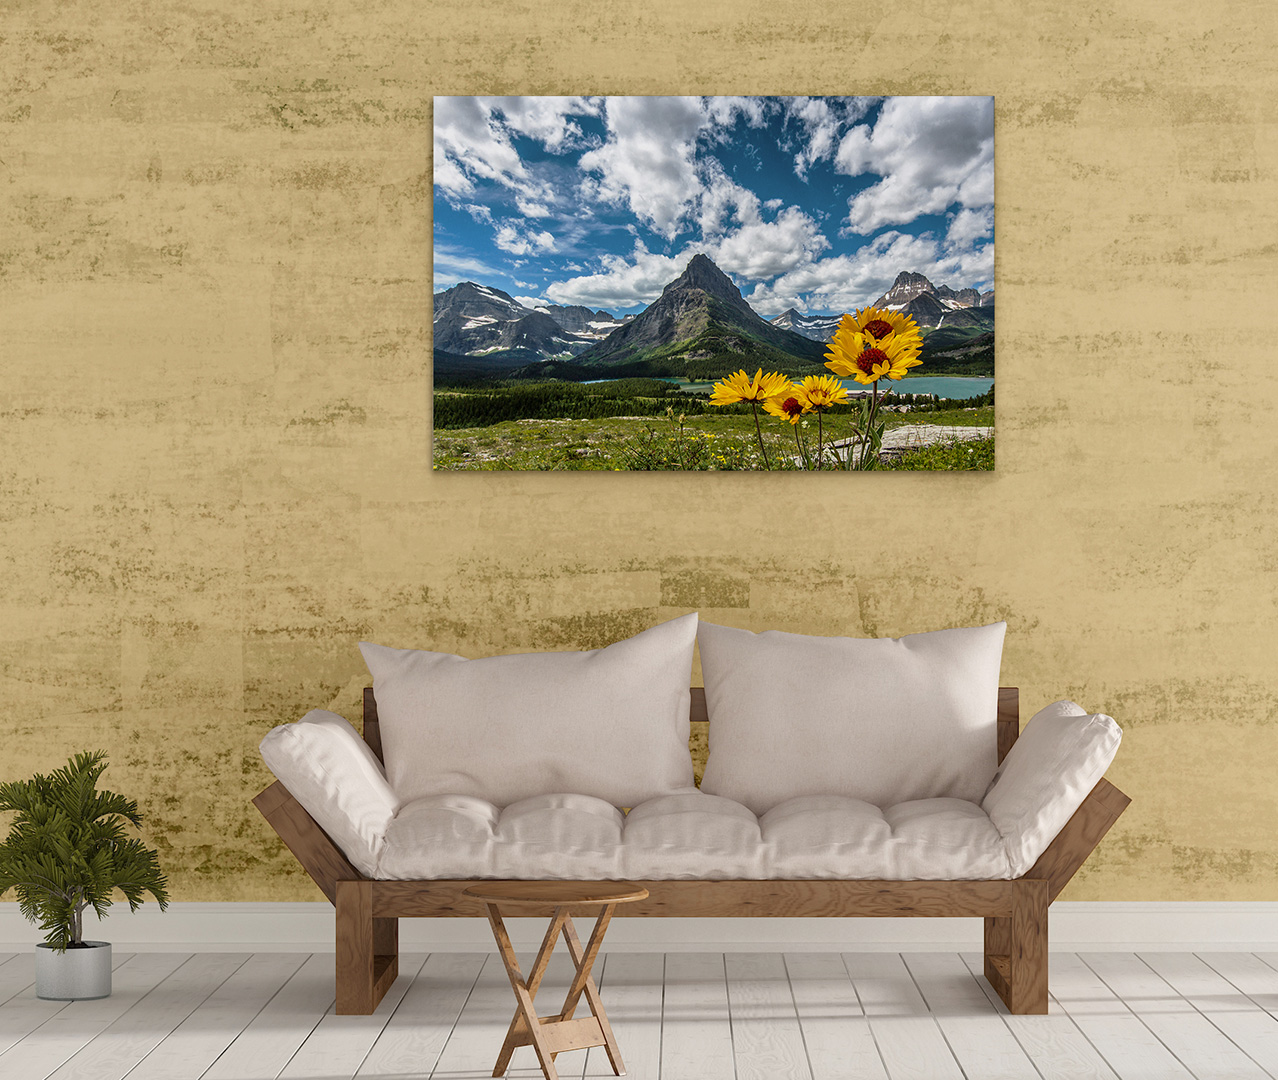 Blanket Flowers and Grinnell Point on Metal – Heavens Peak Photography